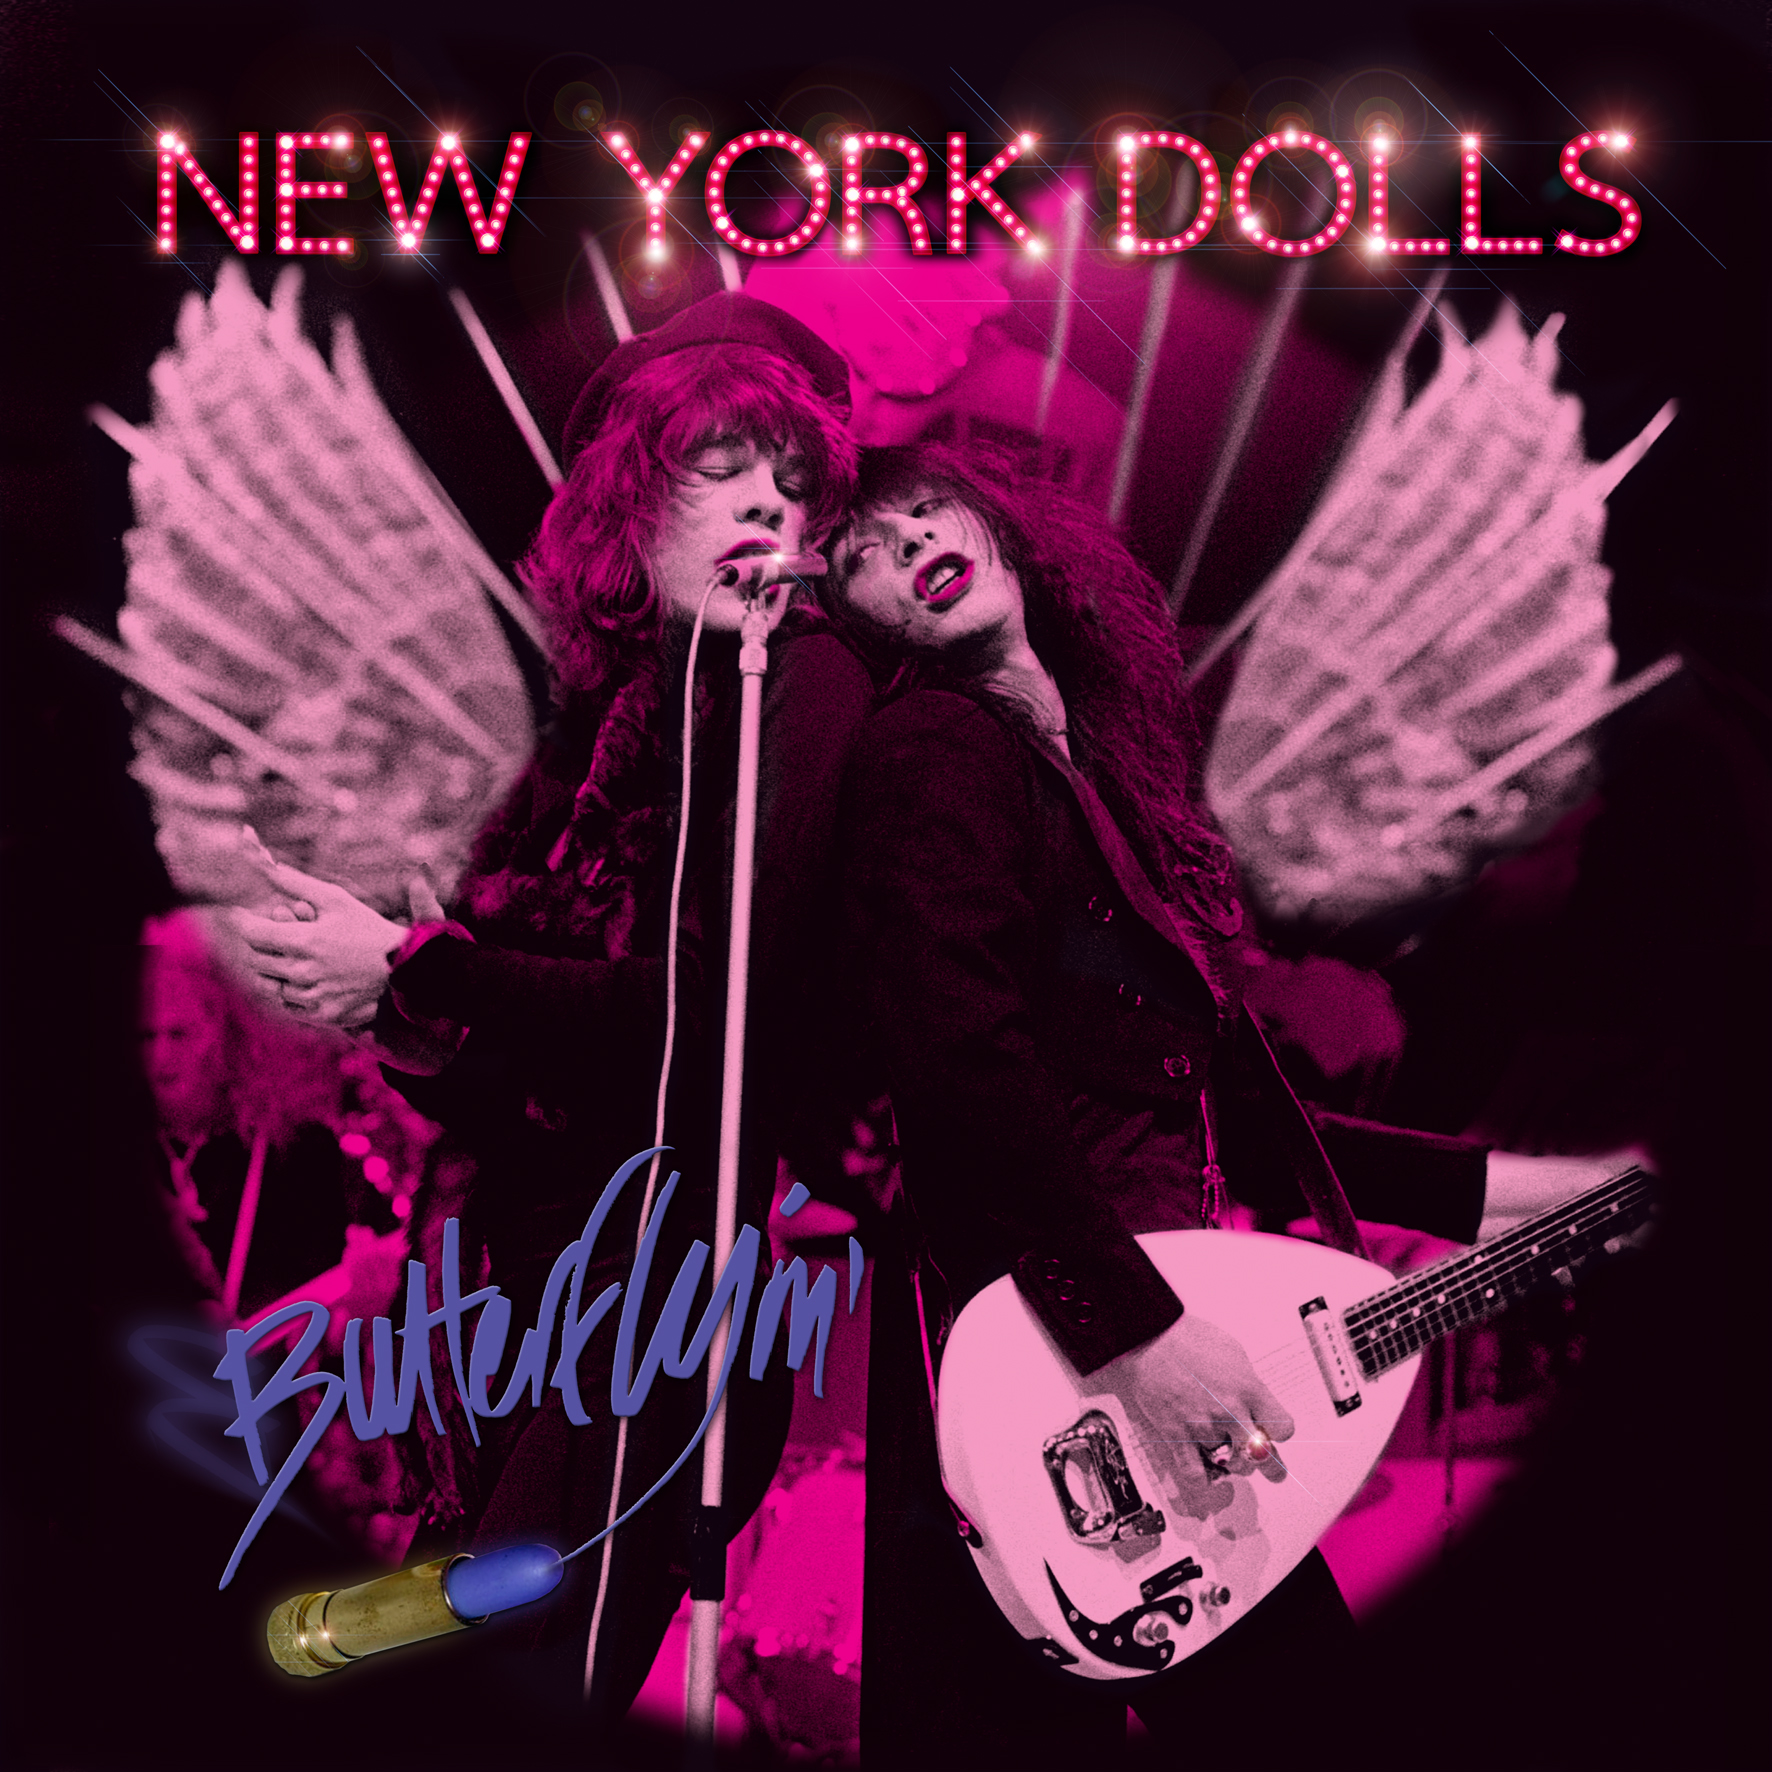 MASTER SPARKLY PINK DOLLS FRONT COVER.jpg